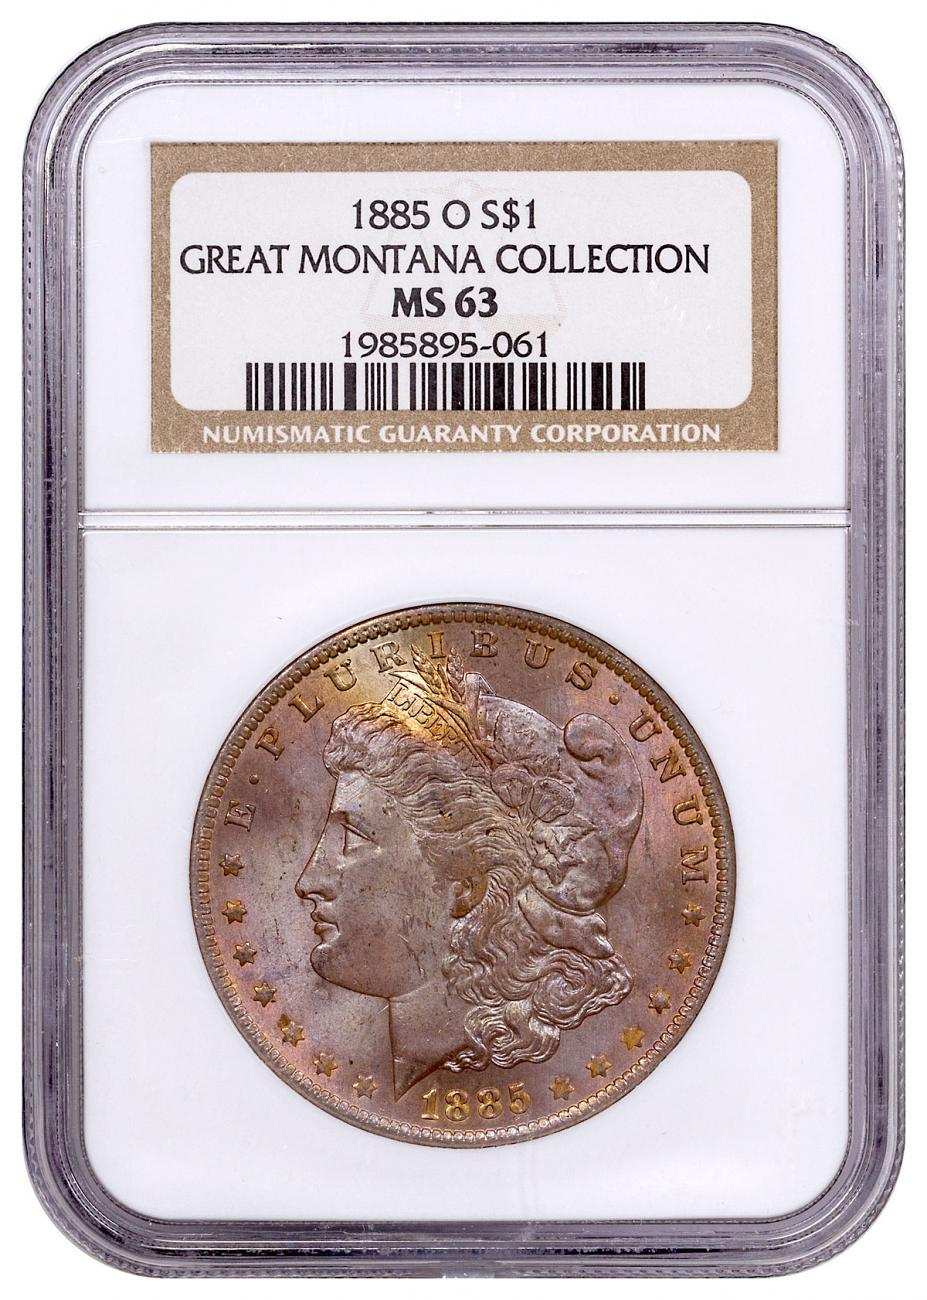 1885-O Morgan Silver Dollar From the Great Montana Collection NGC MS63 Toned CPCR 5061